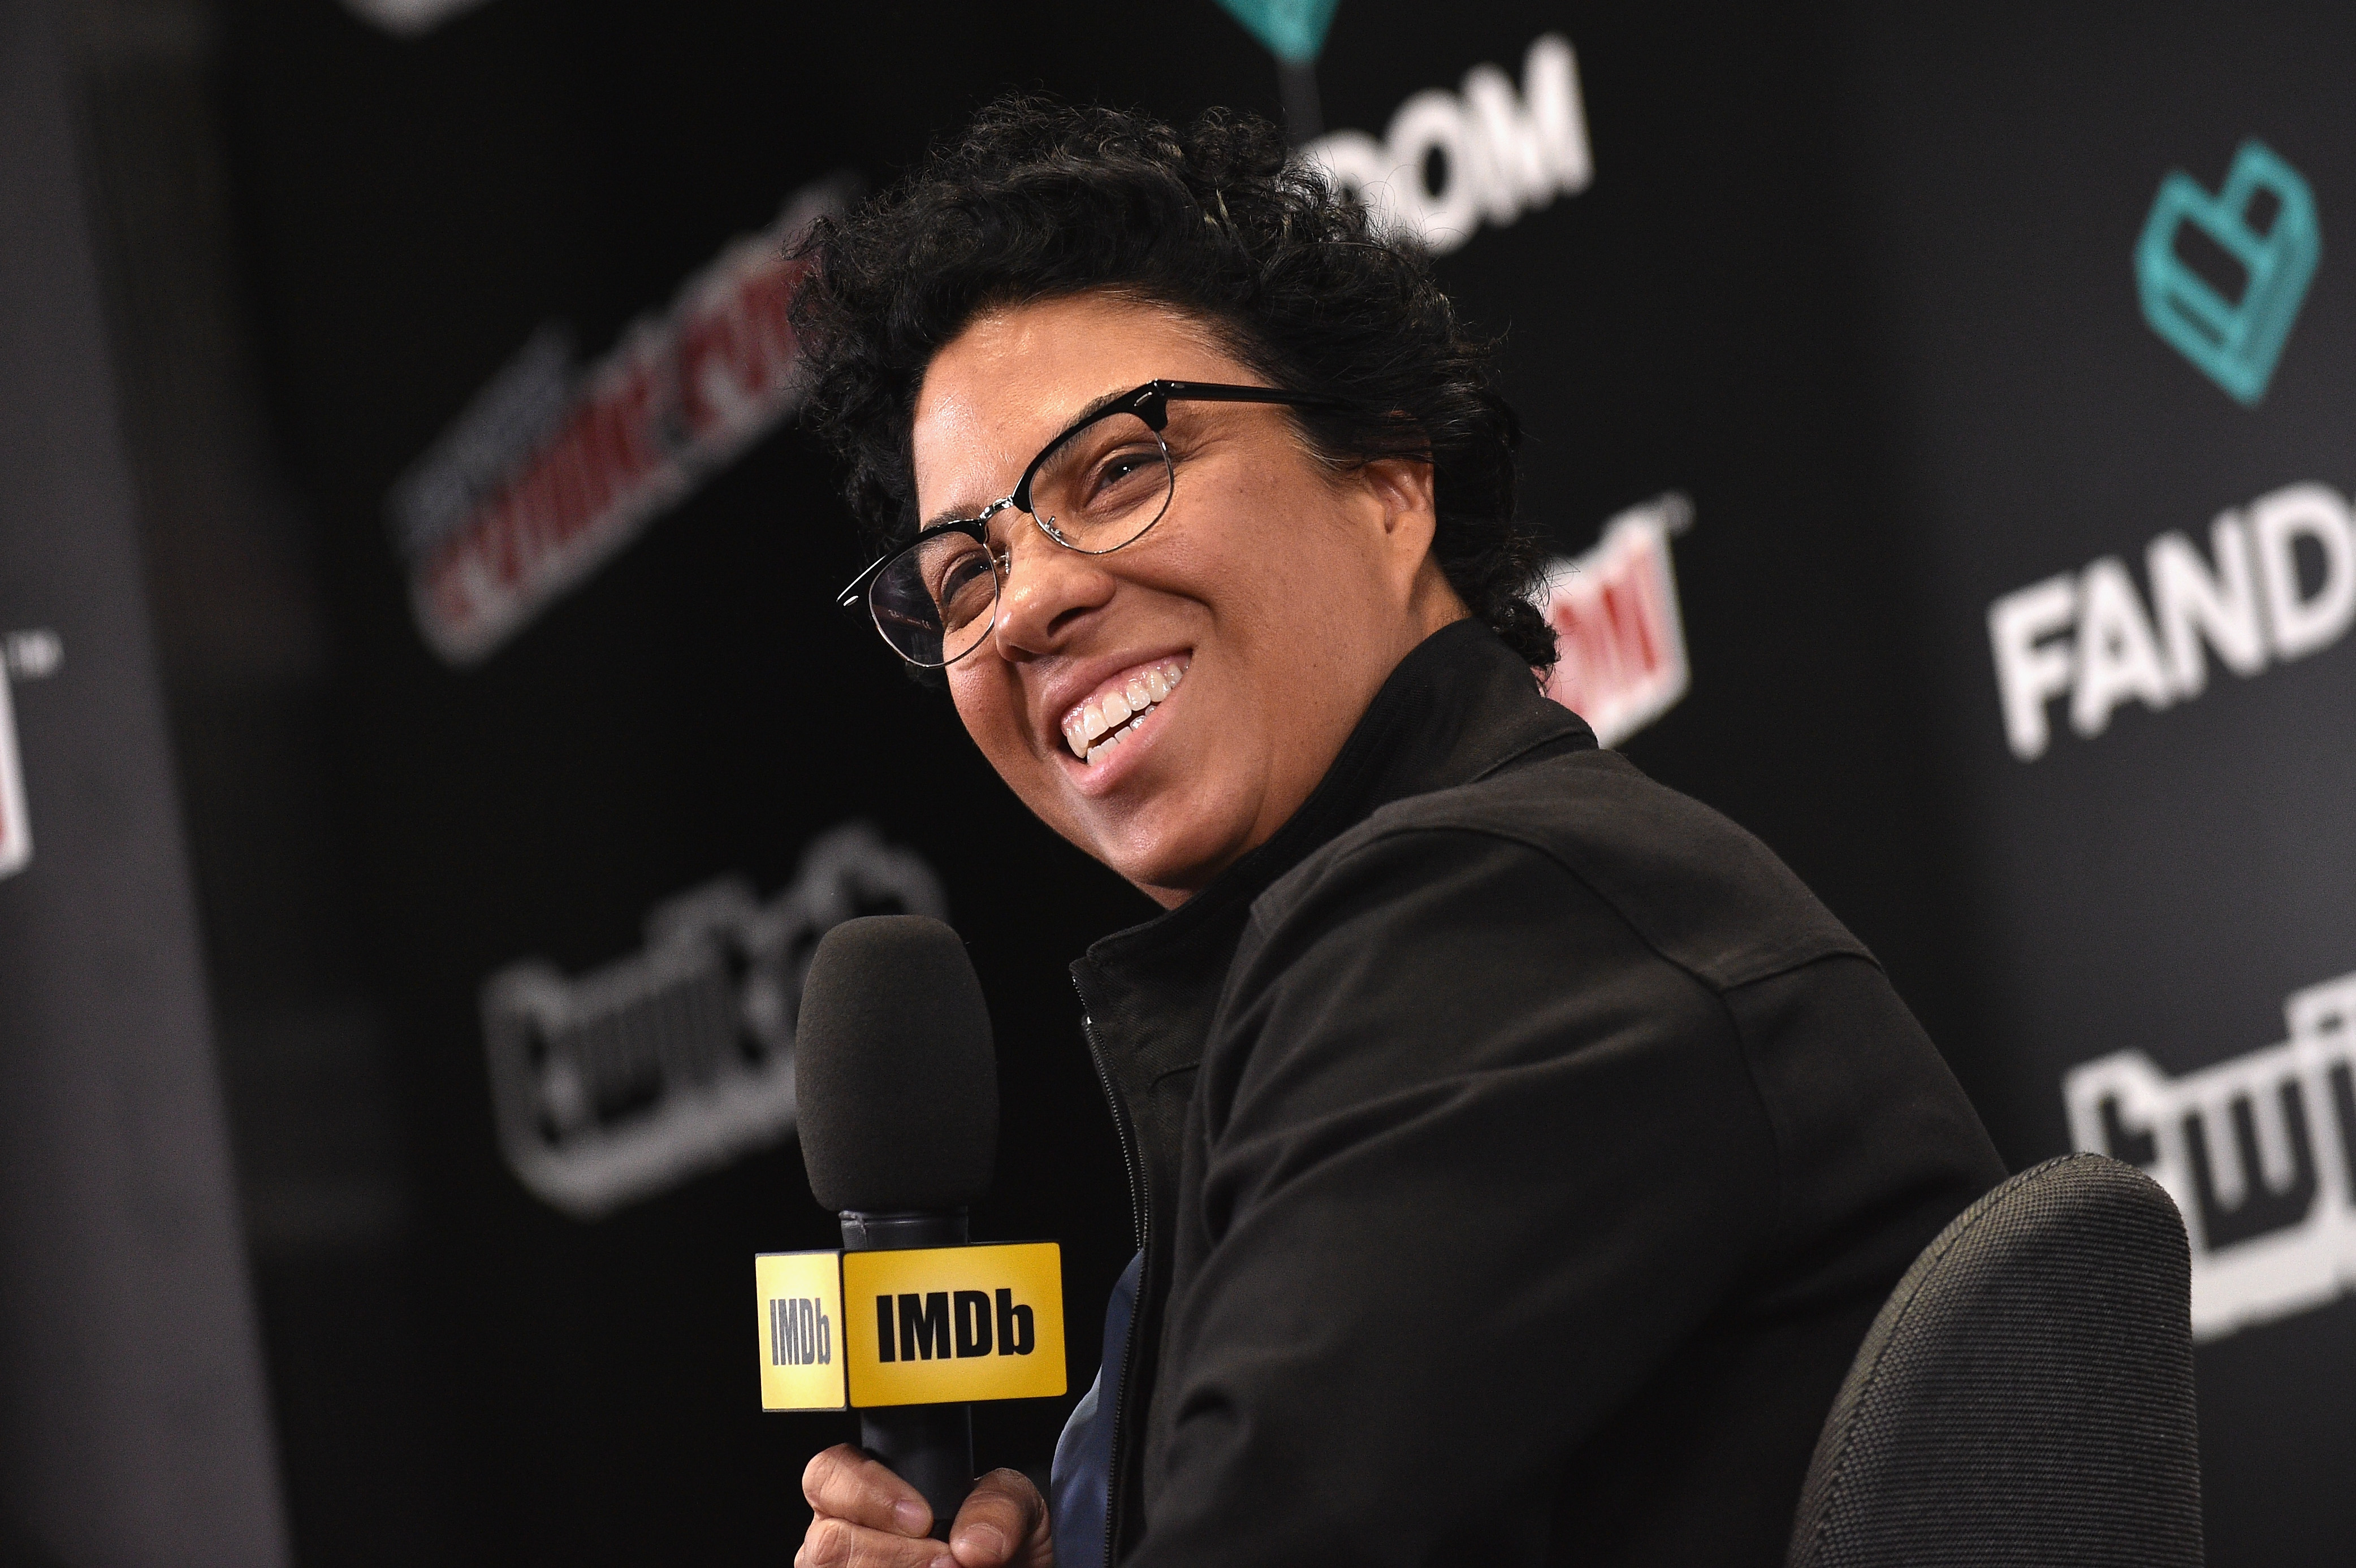 Angela Robinson, writer-director of Professor Marston and the Wonder Woman speaks onstage during IMDb LIVE at NY Comic-Con at Javits Center on October 7, 2017 in New York City.